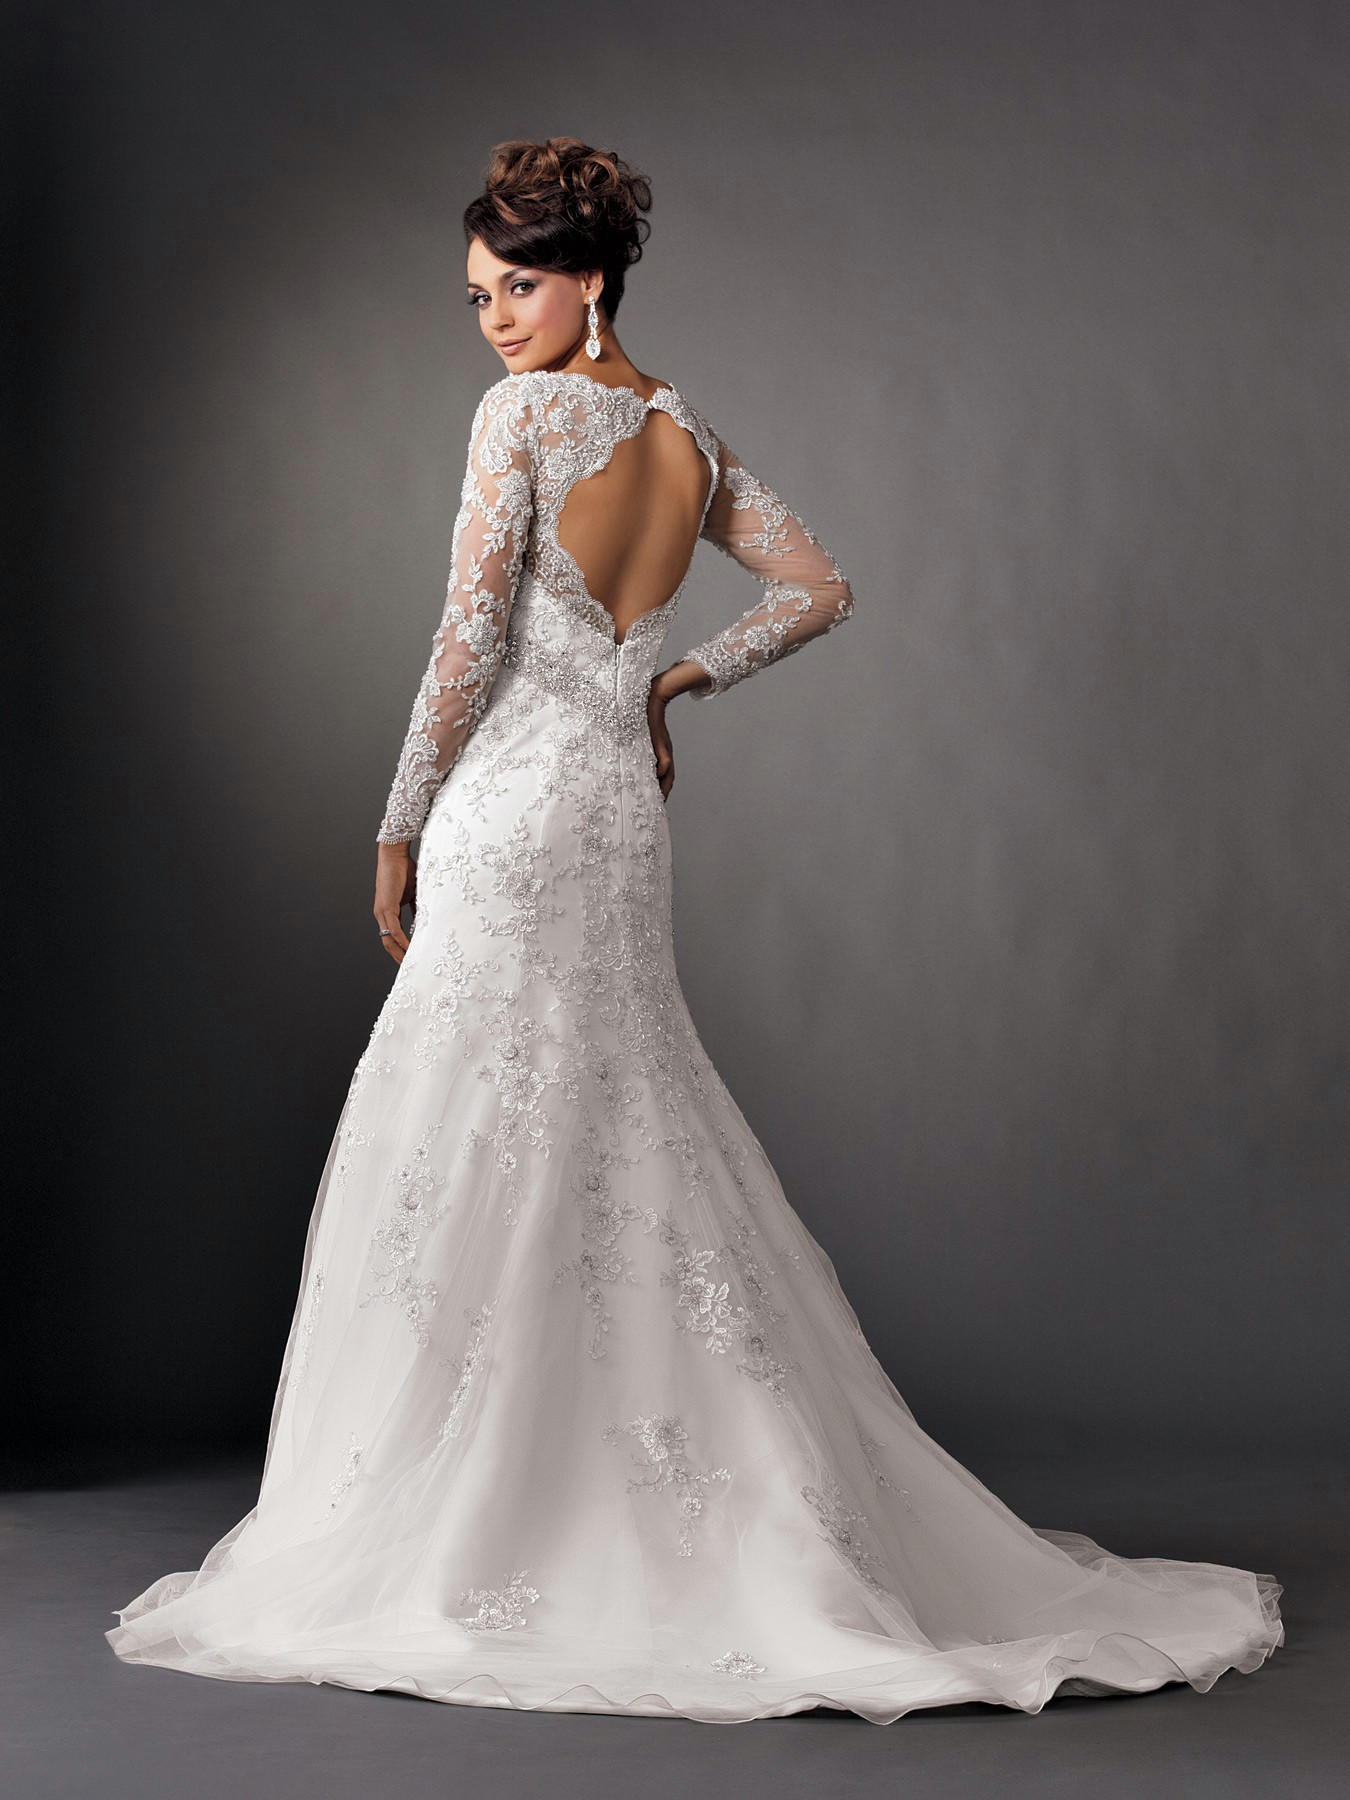 2014 2015 wedding dress trends lace sleeves dipped for Long sleeve lace wedding dresses